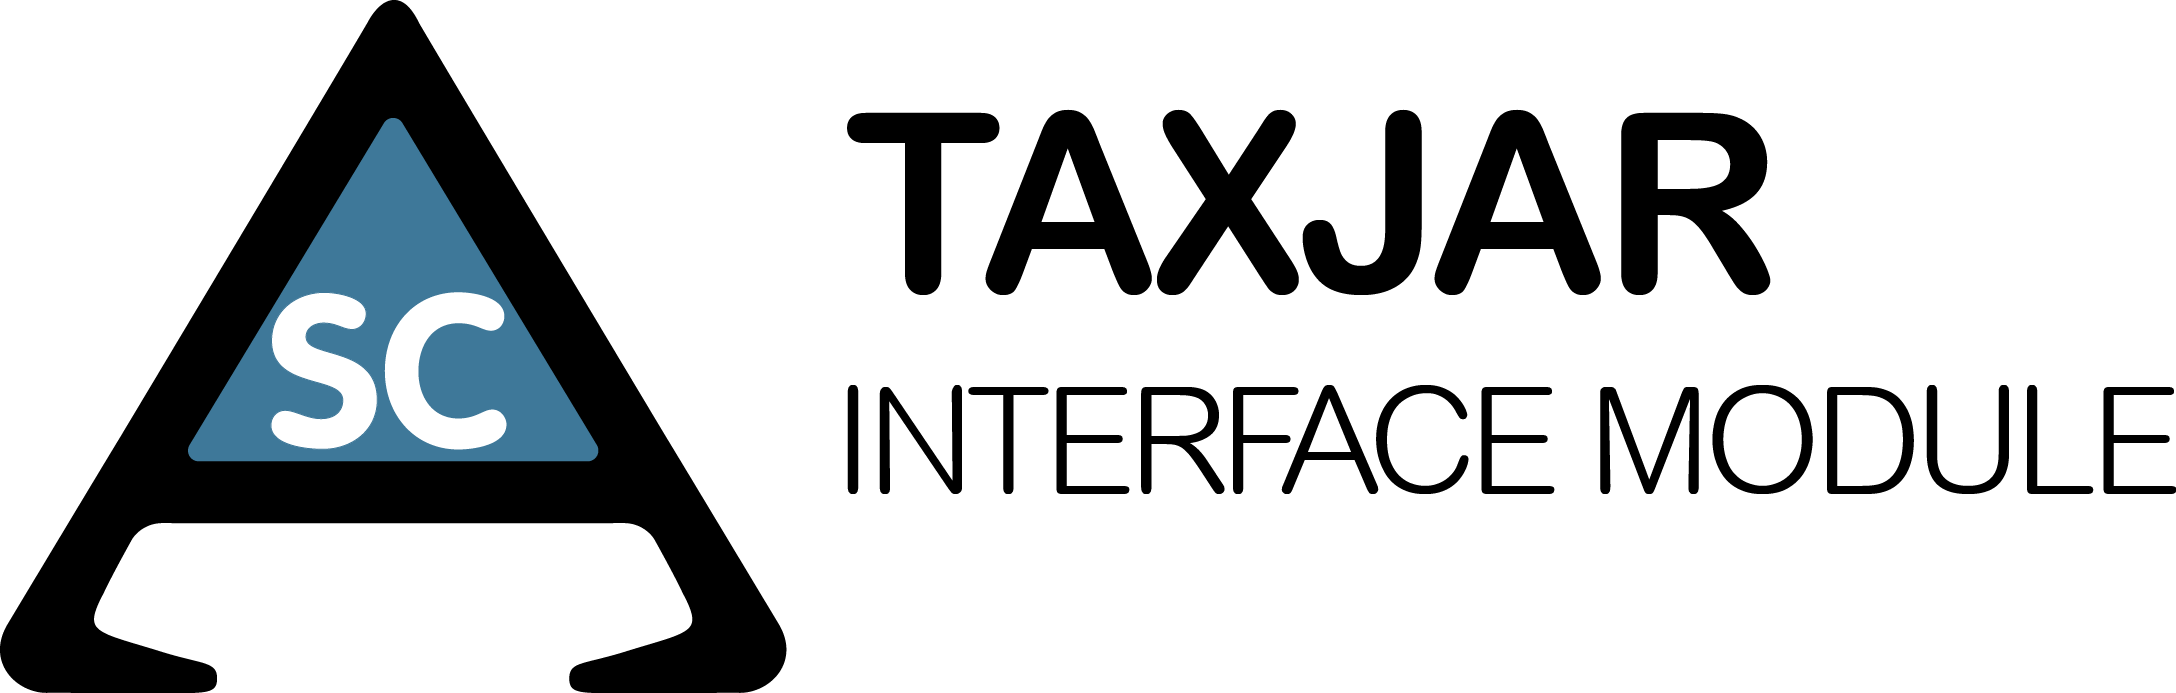 TaxJar Integration - Advanced Solutions and Consulting Co